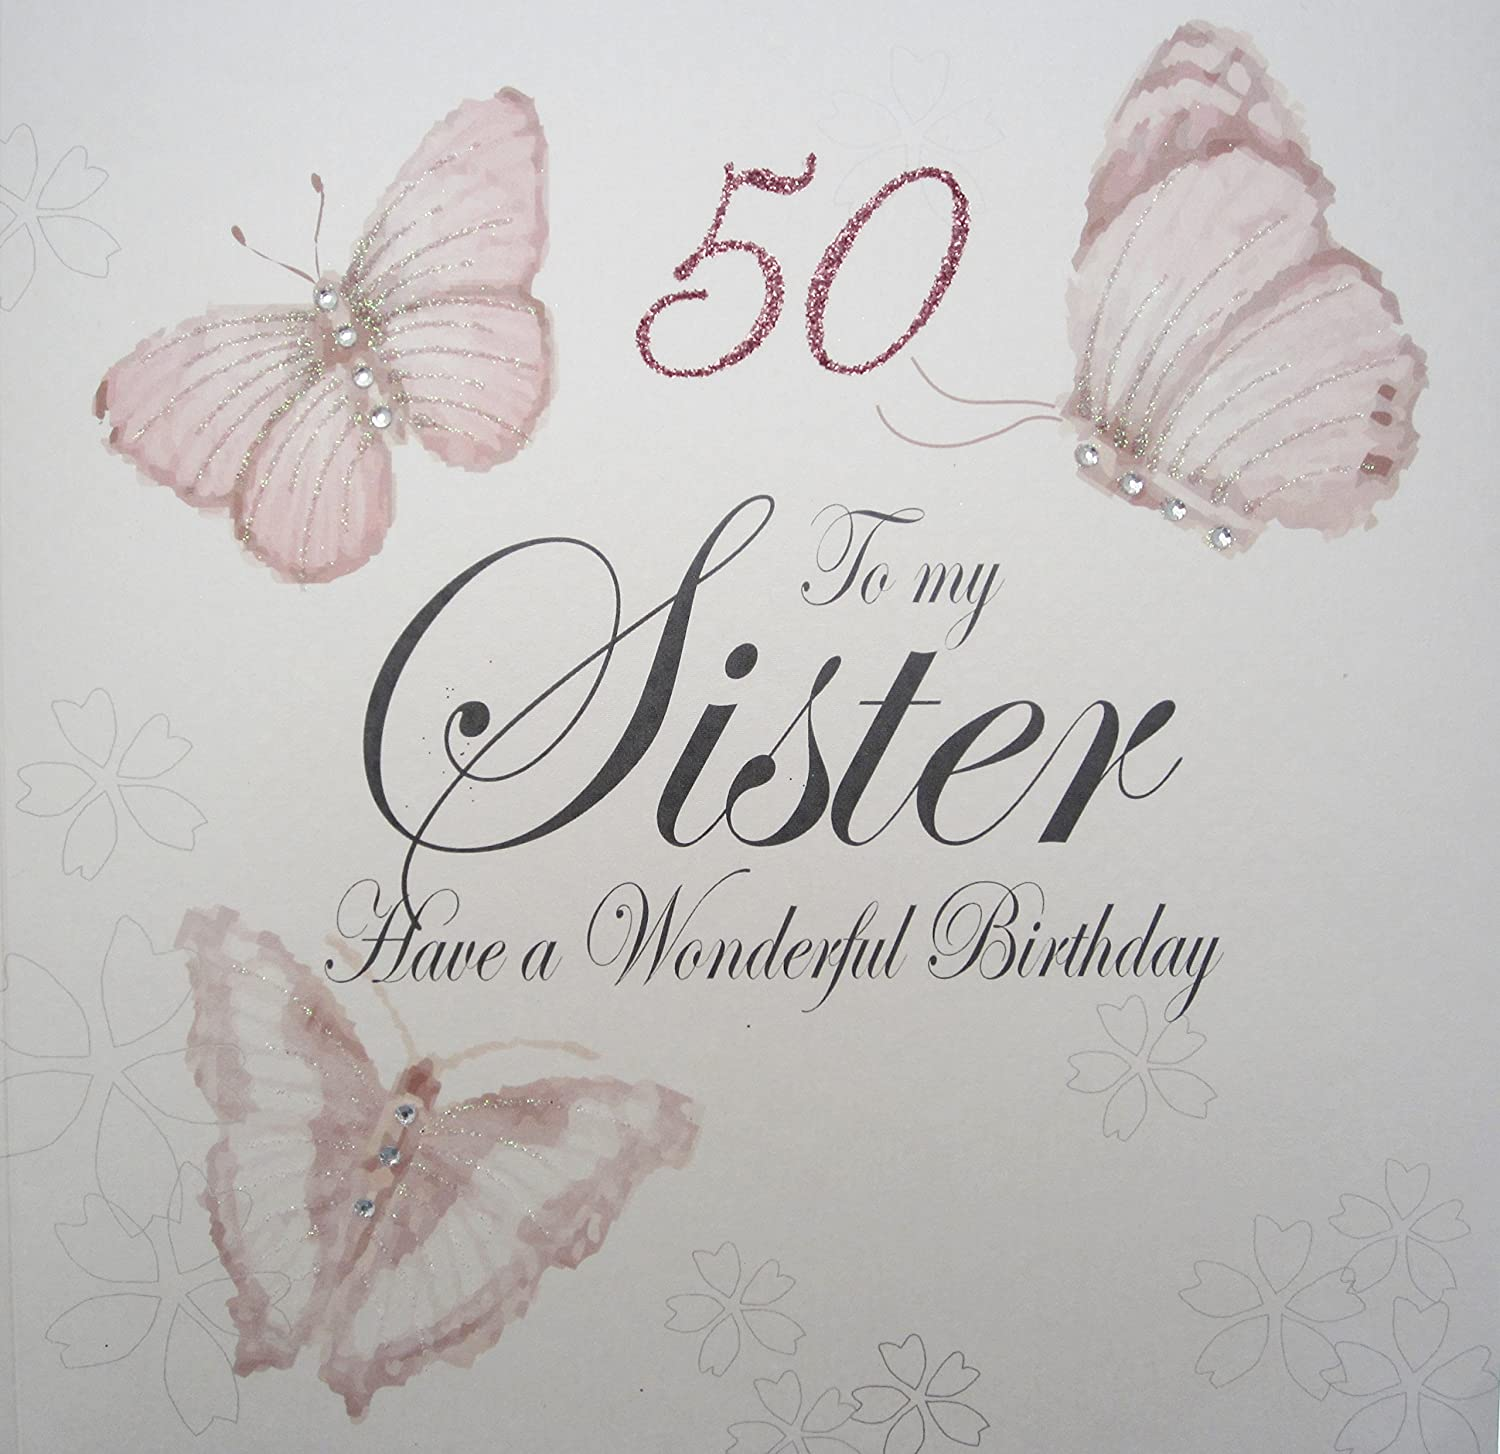 WHITE COTTON CARDS 50 To My Sister Have A Wonderful Handmade Large 50th Birthday Card